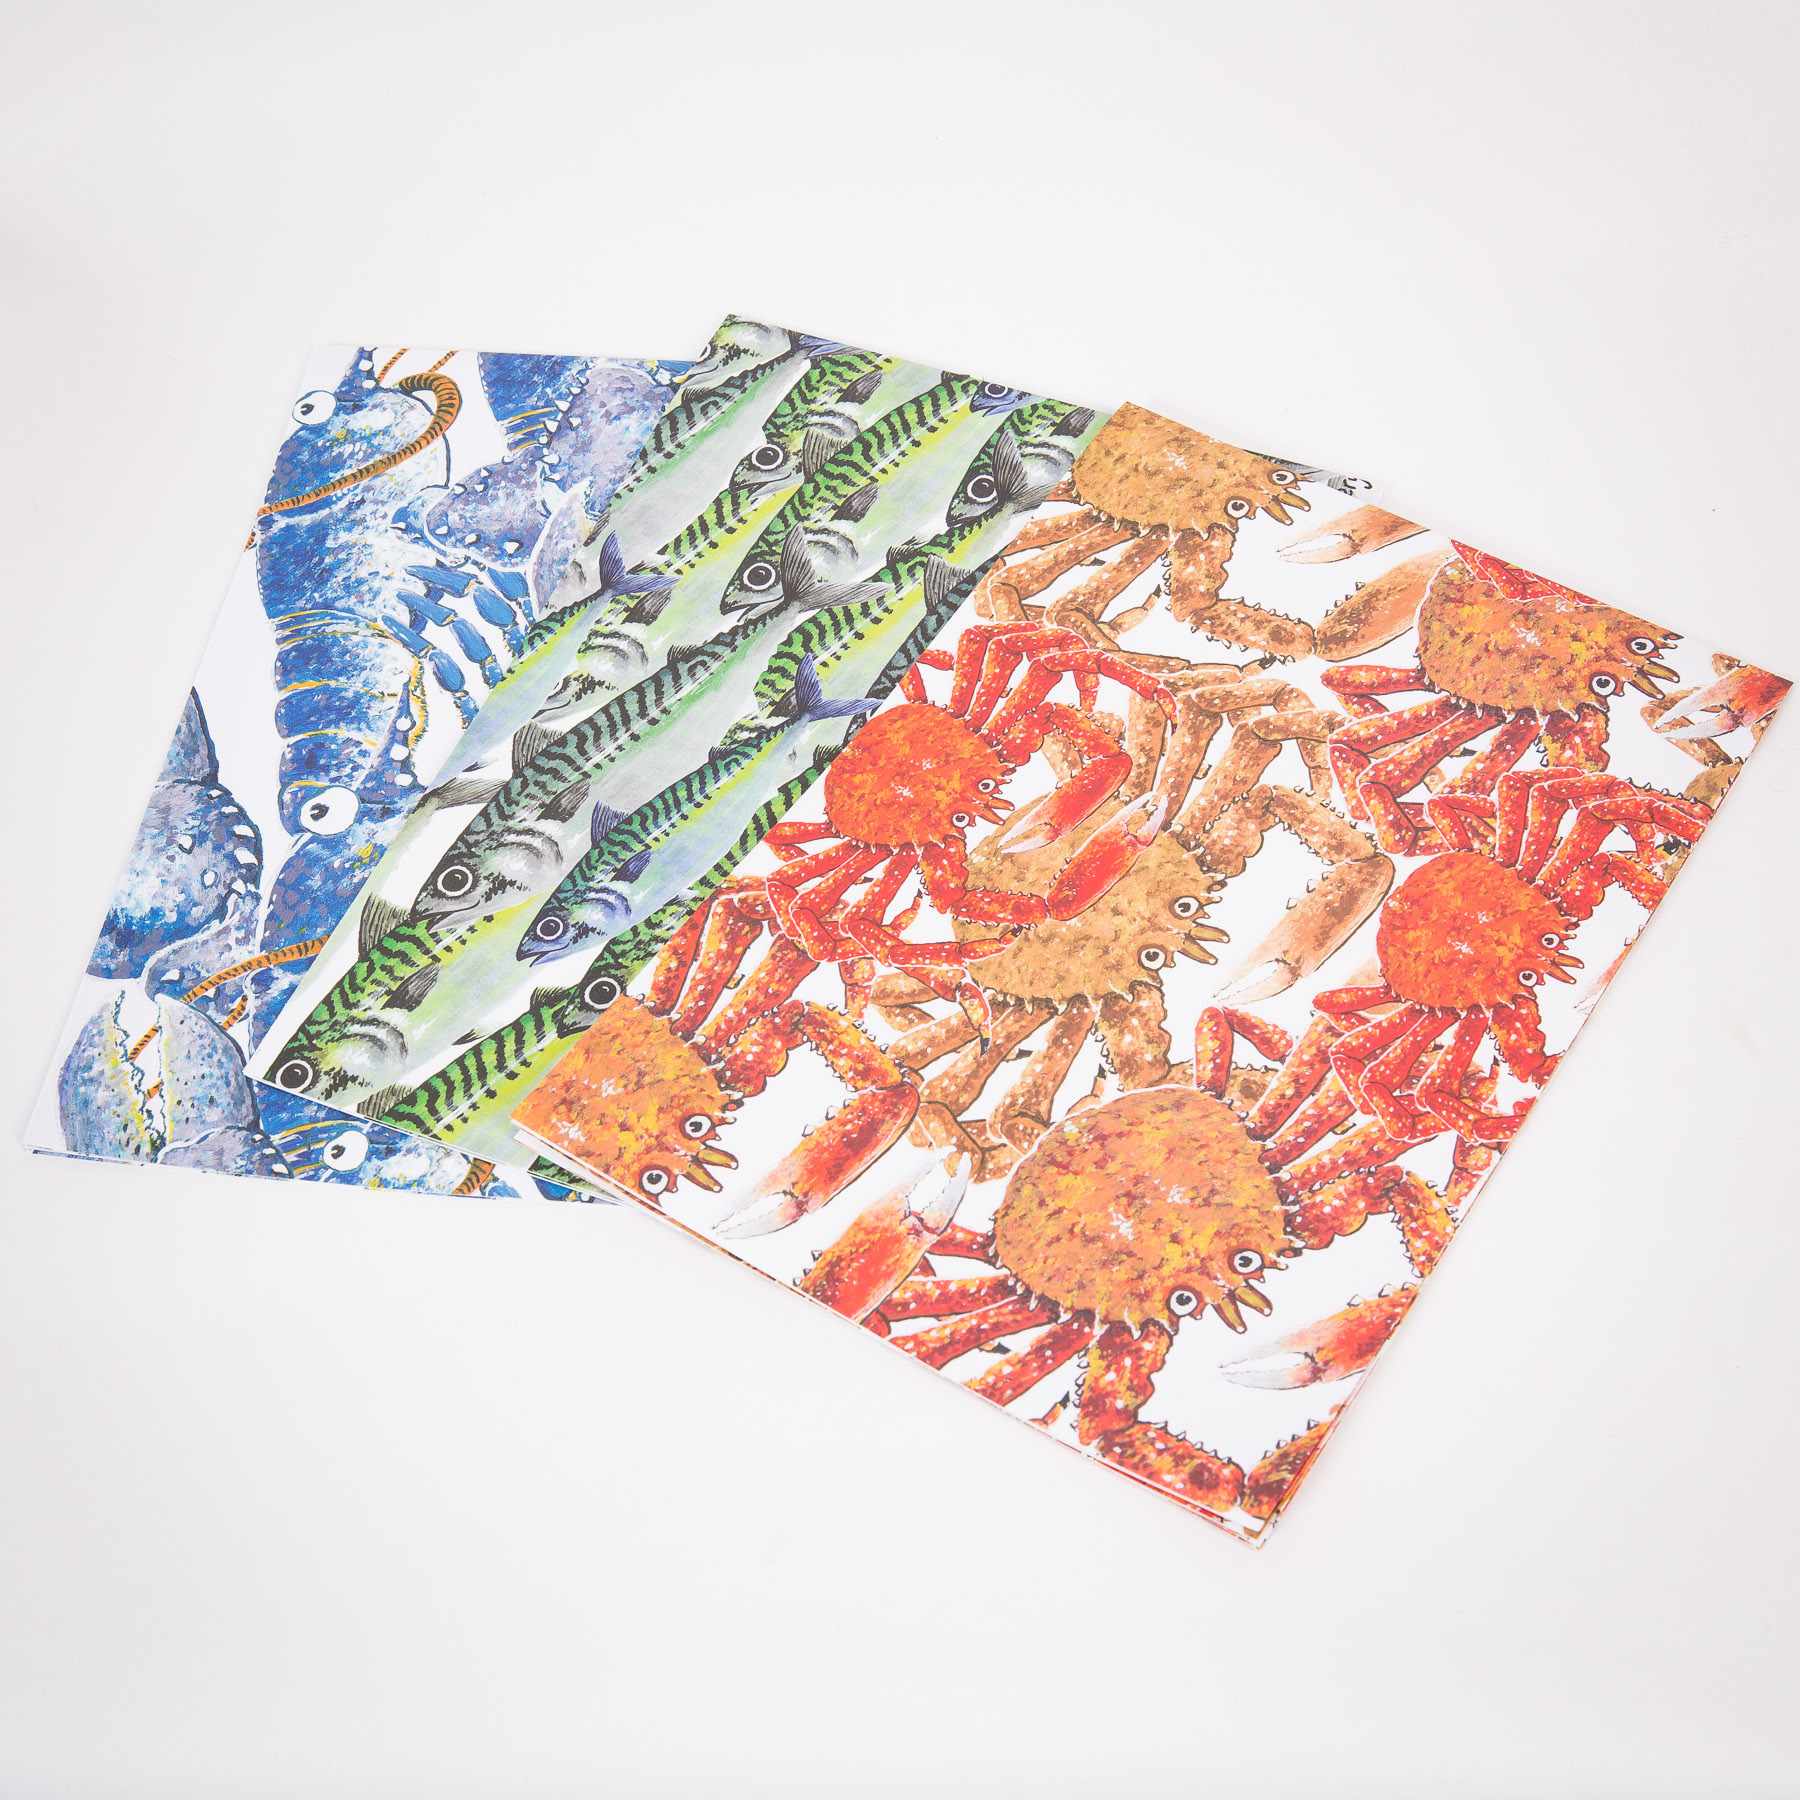 Wrapping Paper (3 unique designs - spider crab, mackerel, lobster) 00149